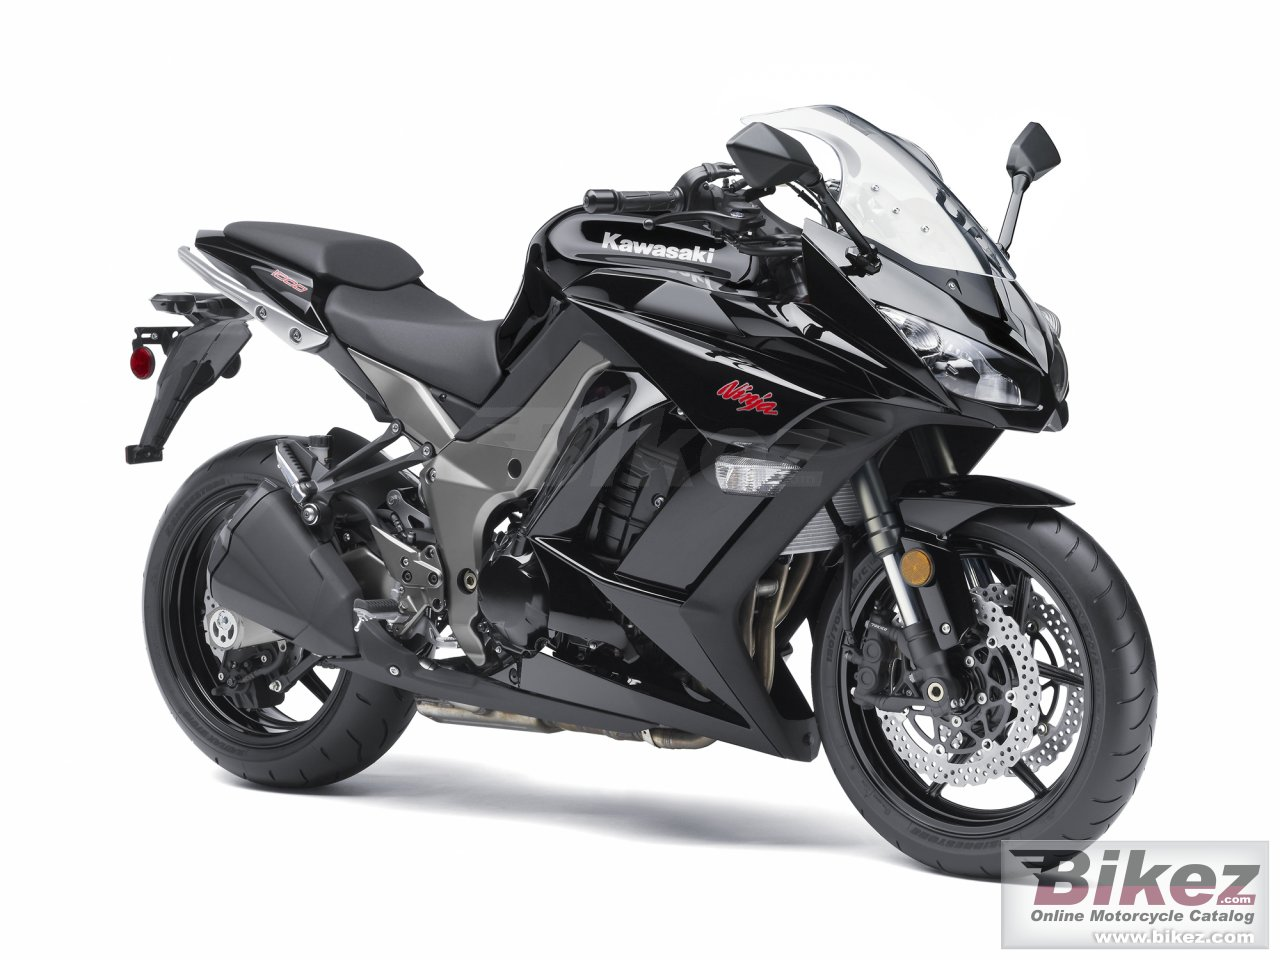 Big Kawasaki ninja 1000 picture and wallpaper from Bikez.com